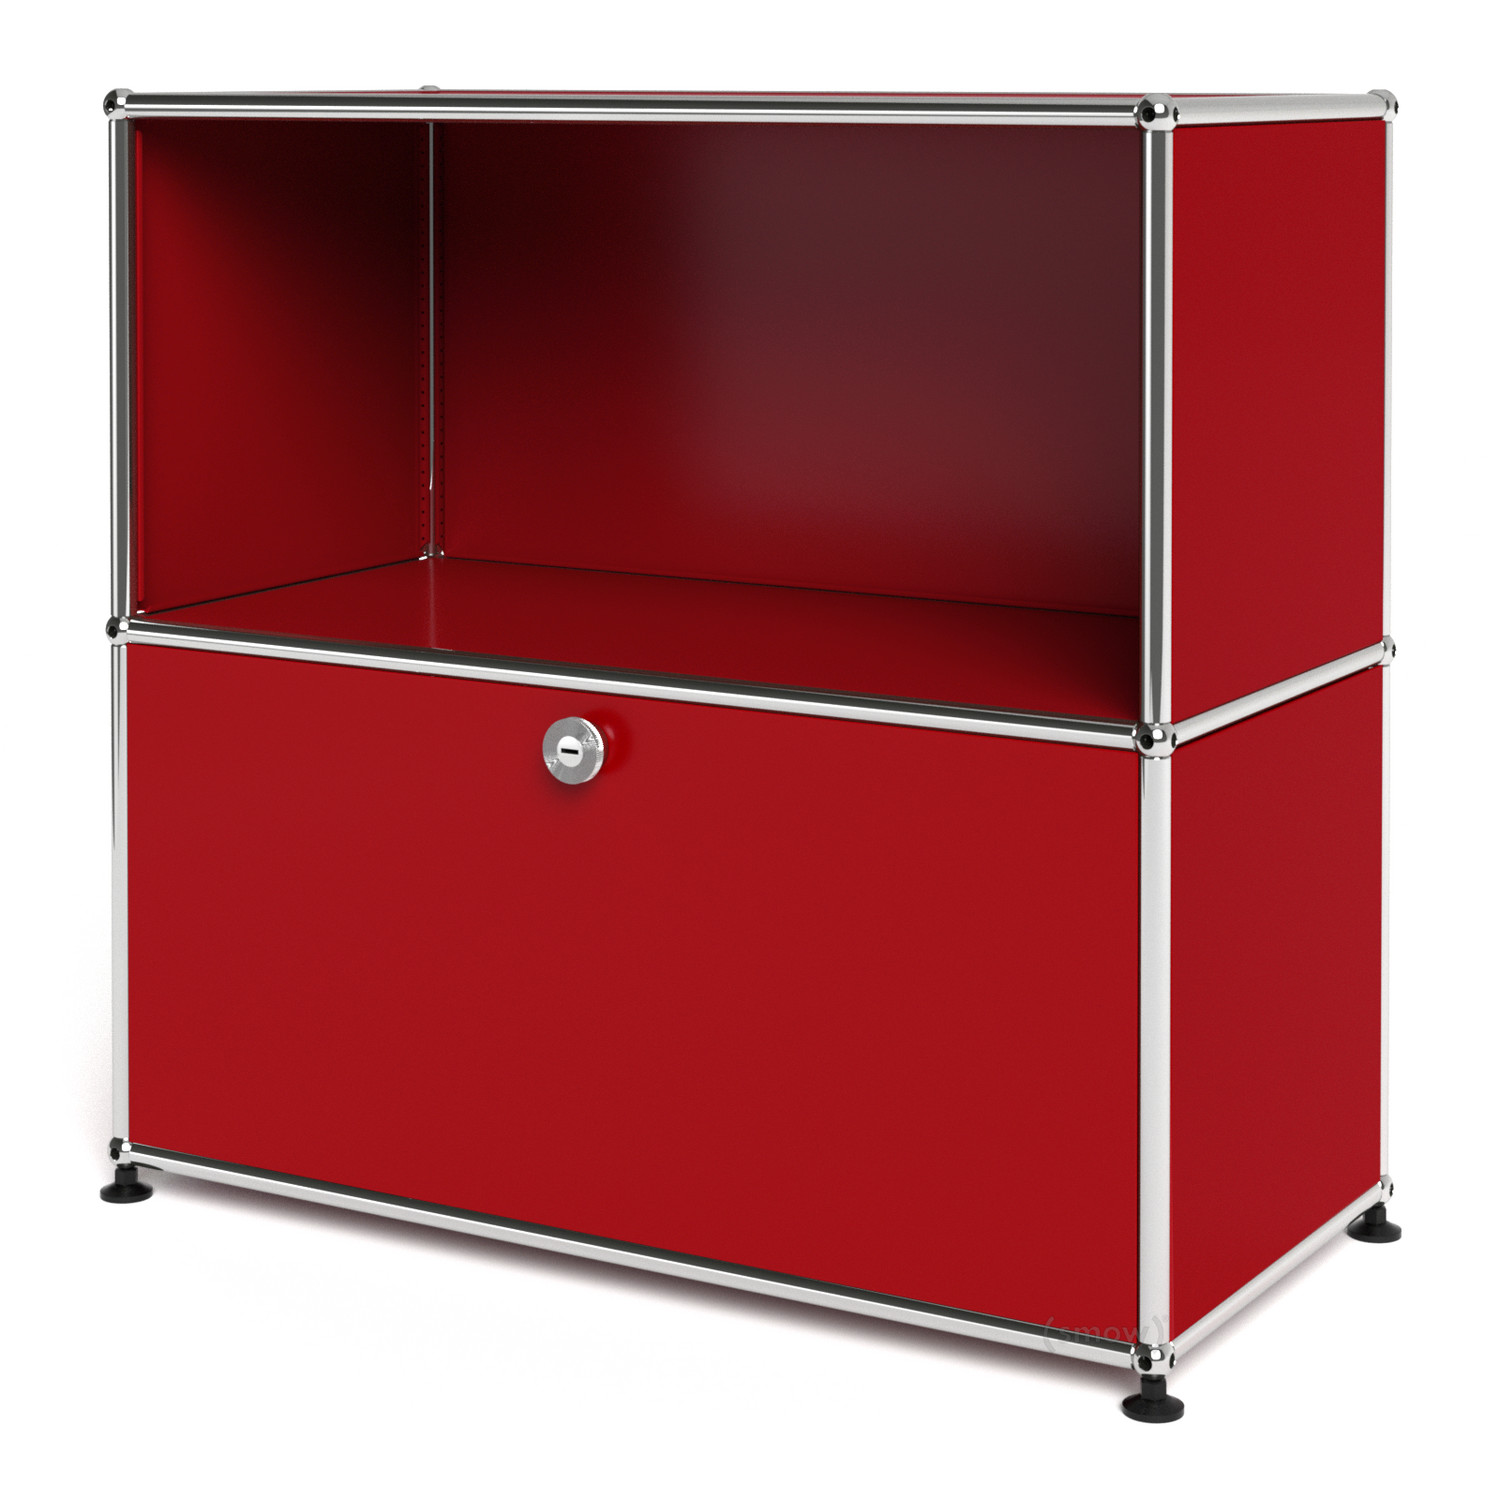 Usm haller sideboard m customisable usm ruby red open for Sideboard usm